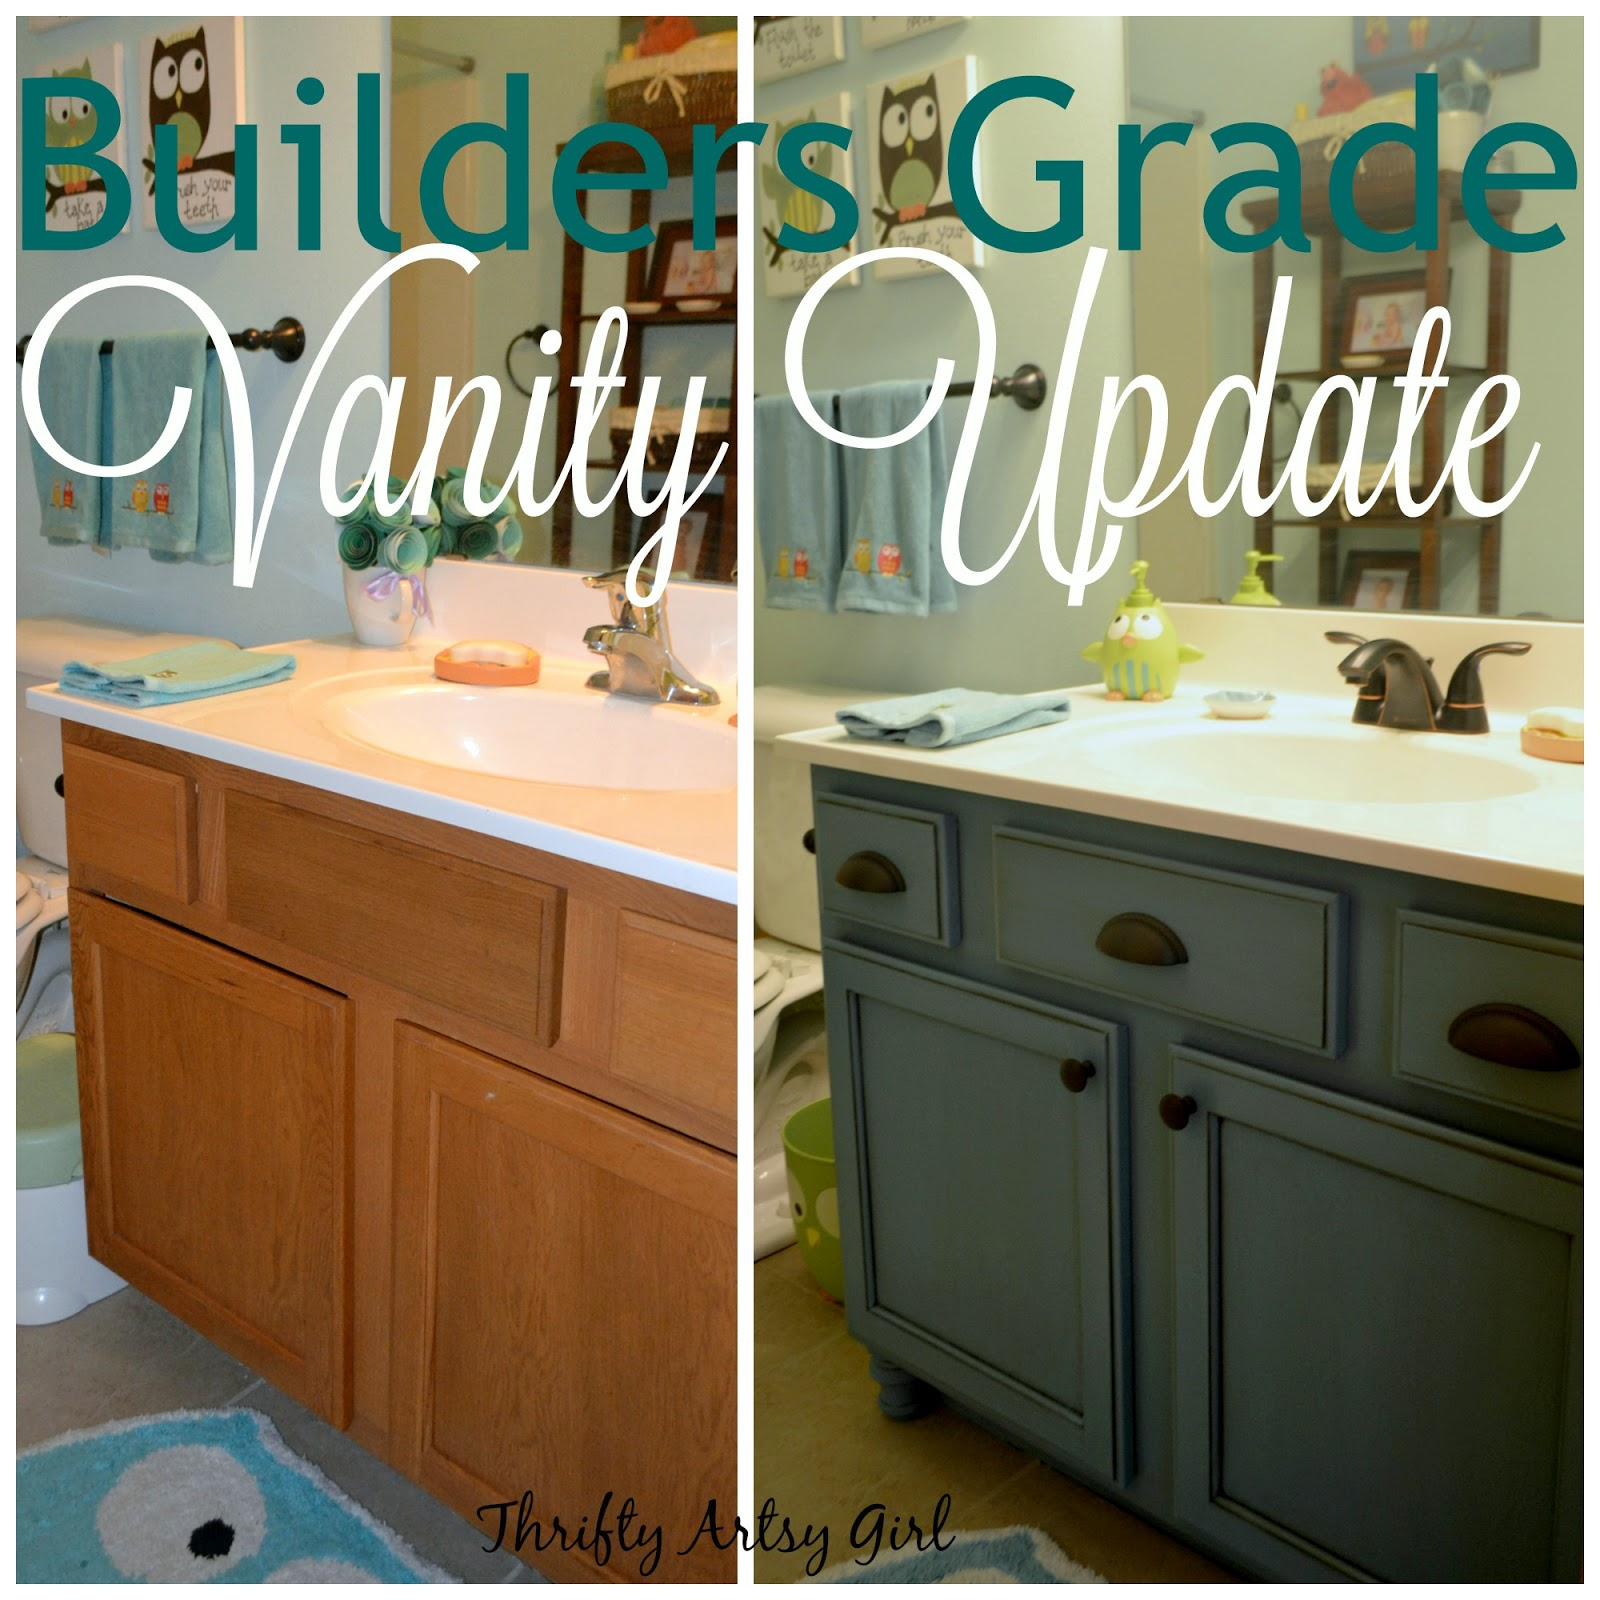 Merveilleux Builders Grade Teal Bathroom Vanity And Faucet Upgrade For Only $60